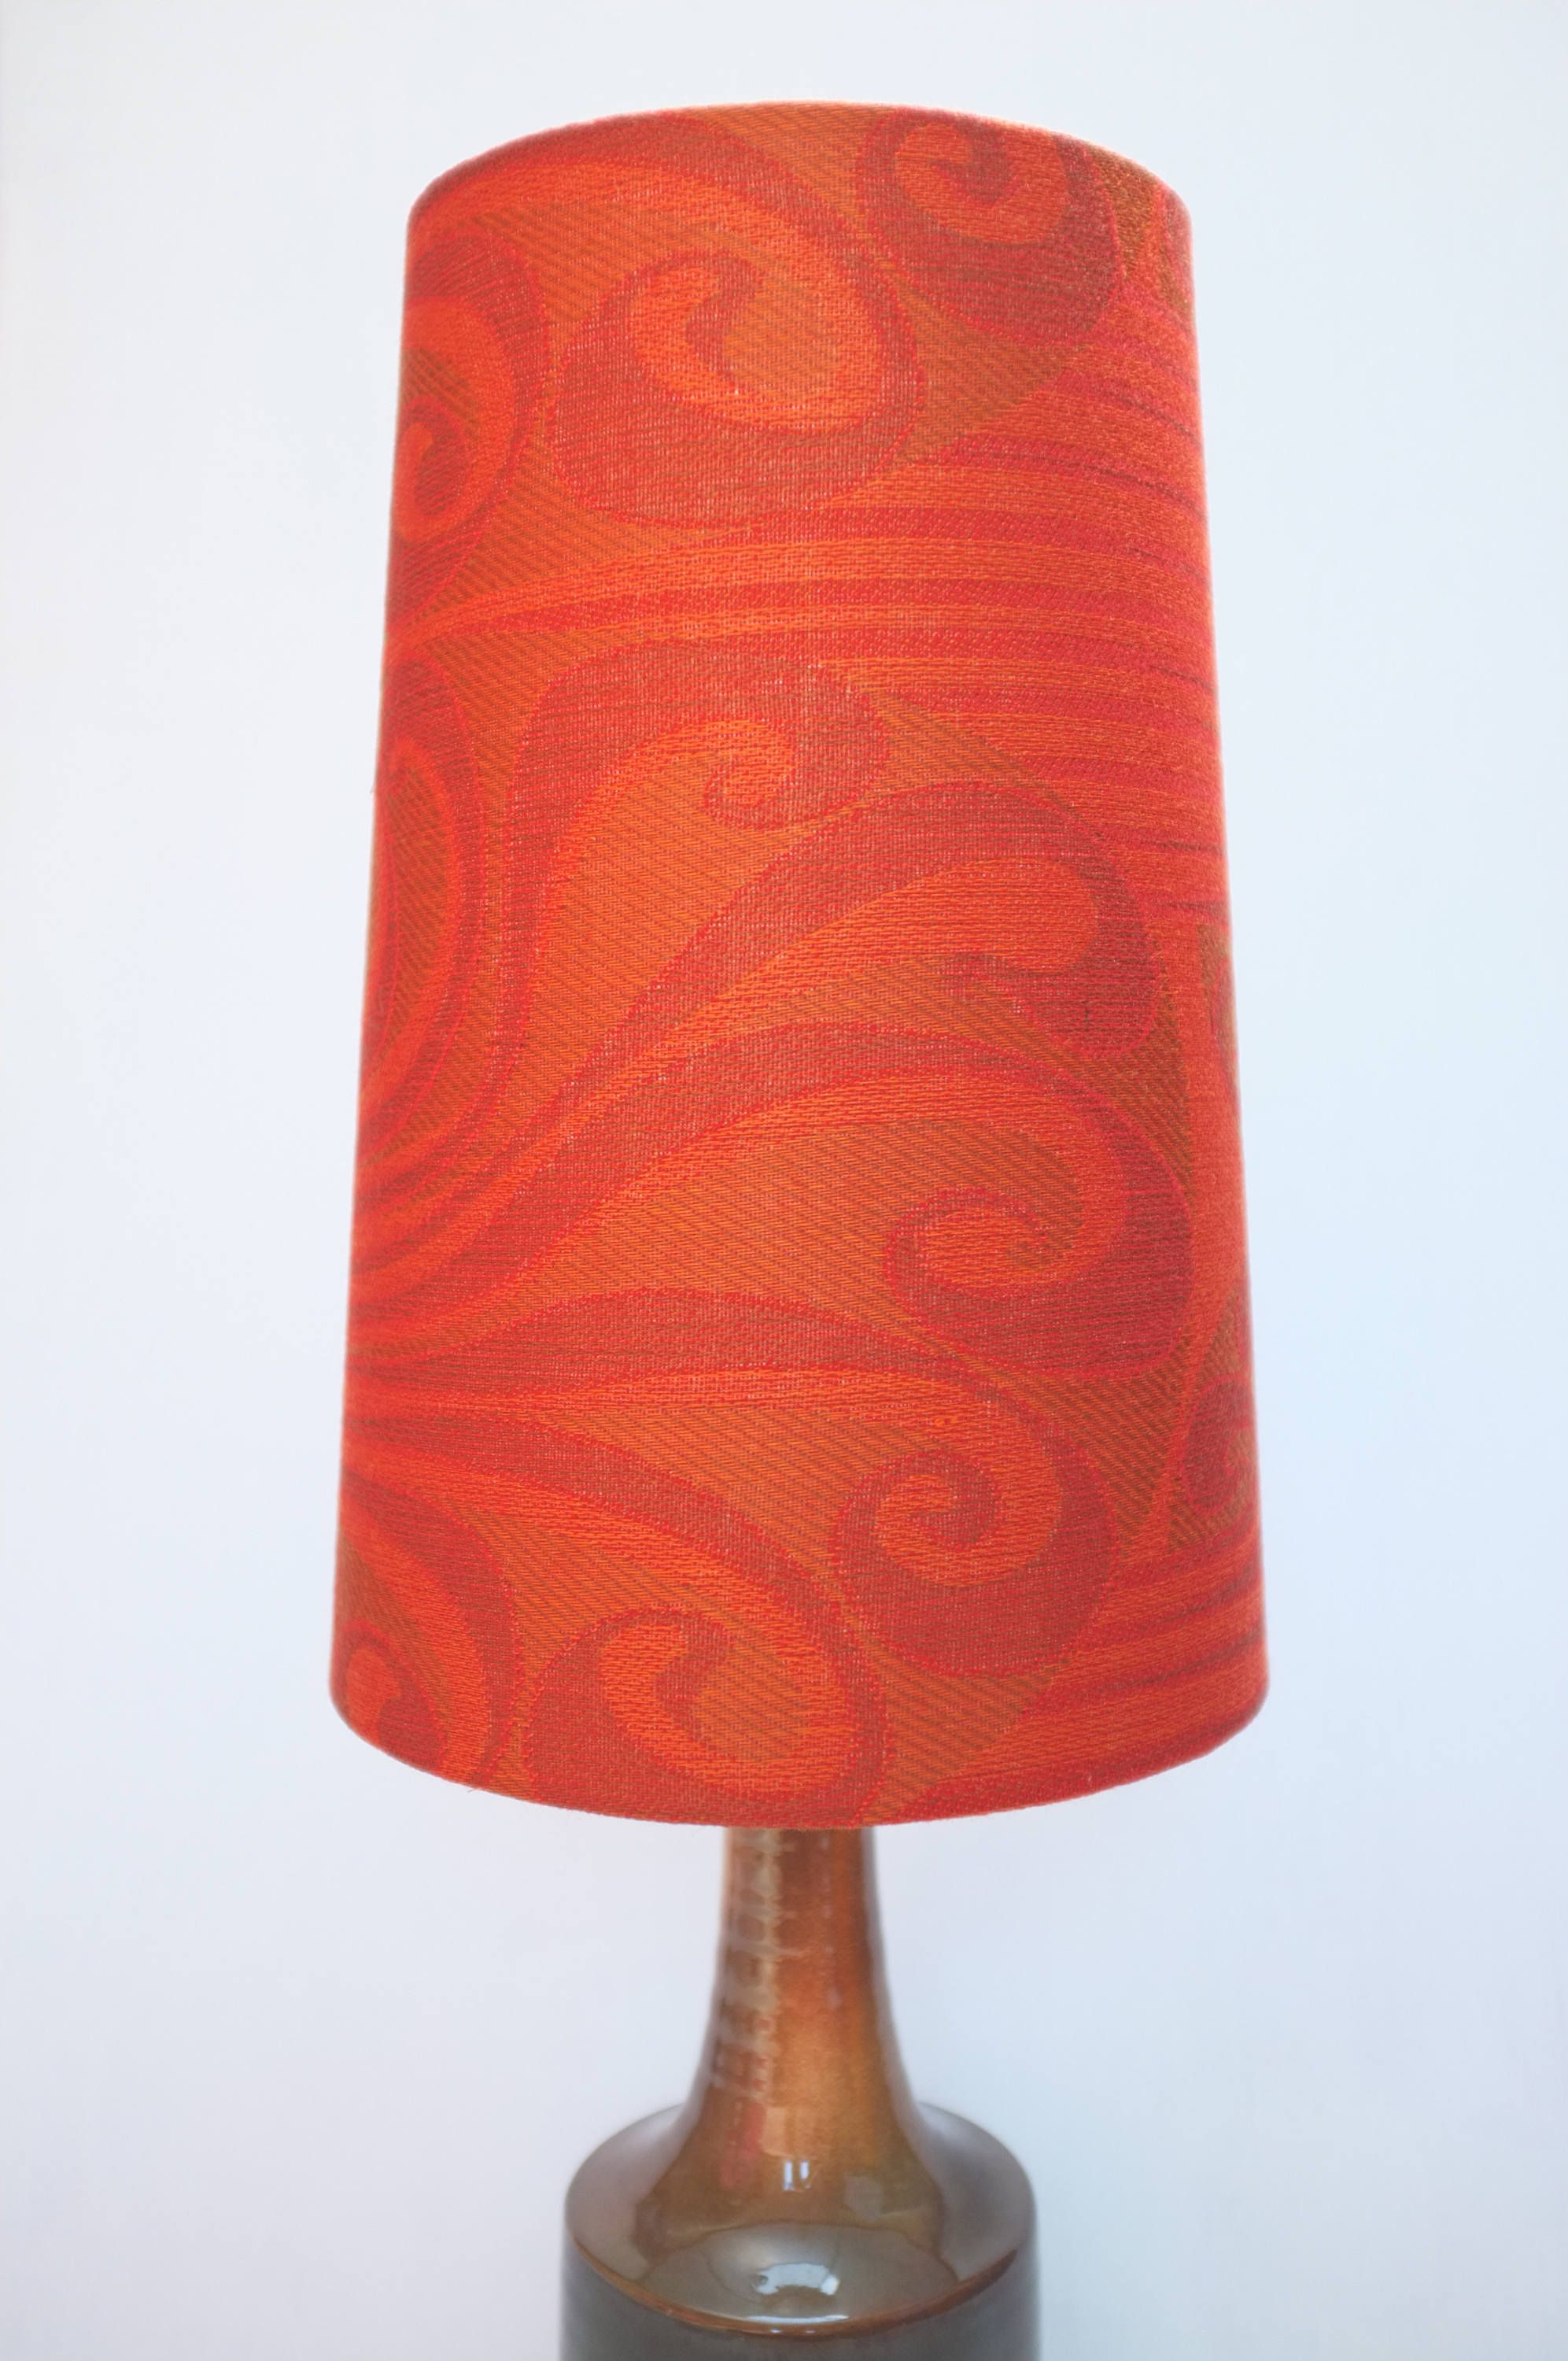 Retro Lampshade, Original Fabric, Extra Tall Conical, 60S70S Orange, Red